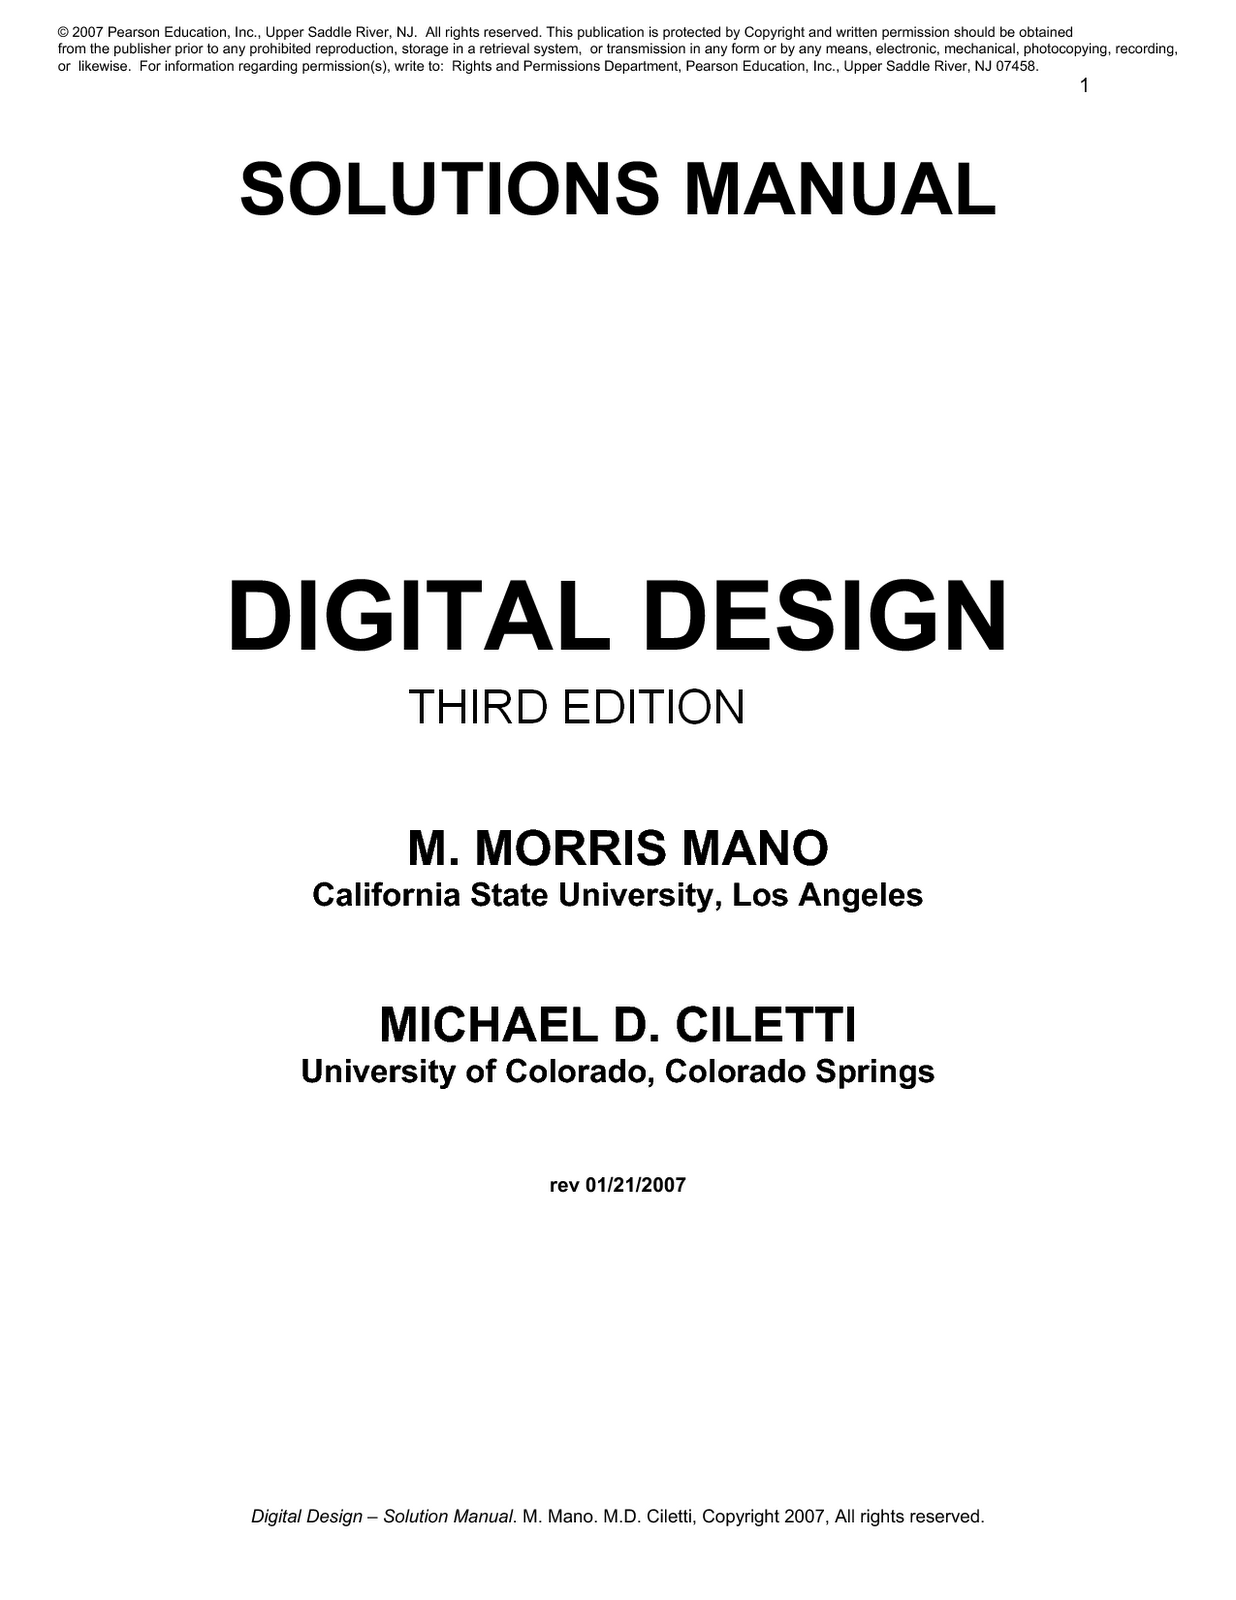 Solutions Of Digital Design By Morris Mano 3rd Edition Ieee Books Analog Integrated Circuits Free Pdf Bookstore